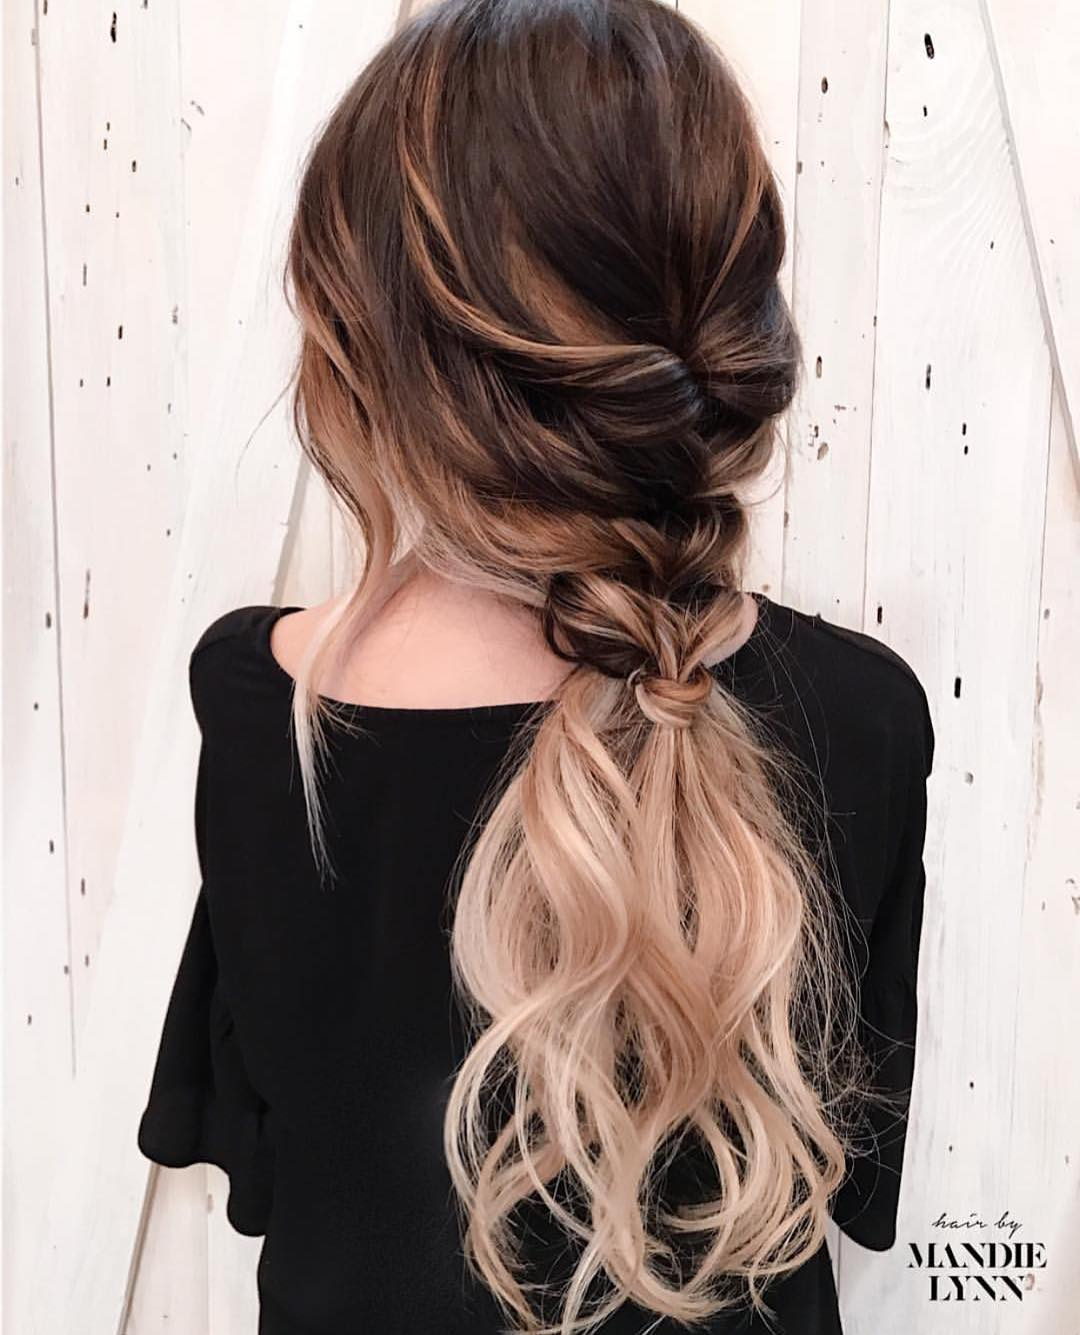 easy ponytail styles for long hair 10 trendiest ponytail hairstyles for hair 2019 easy 7794 | trendiest ponytail hairstyle for long hair easy ponytails 2